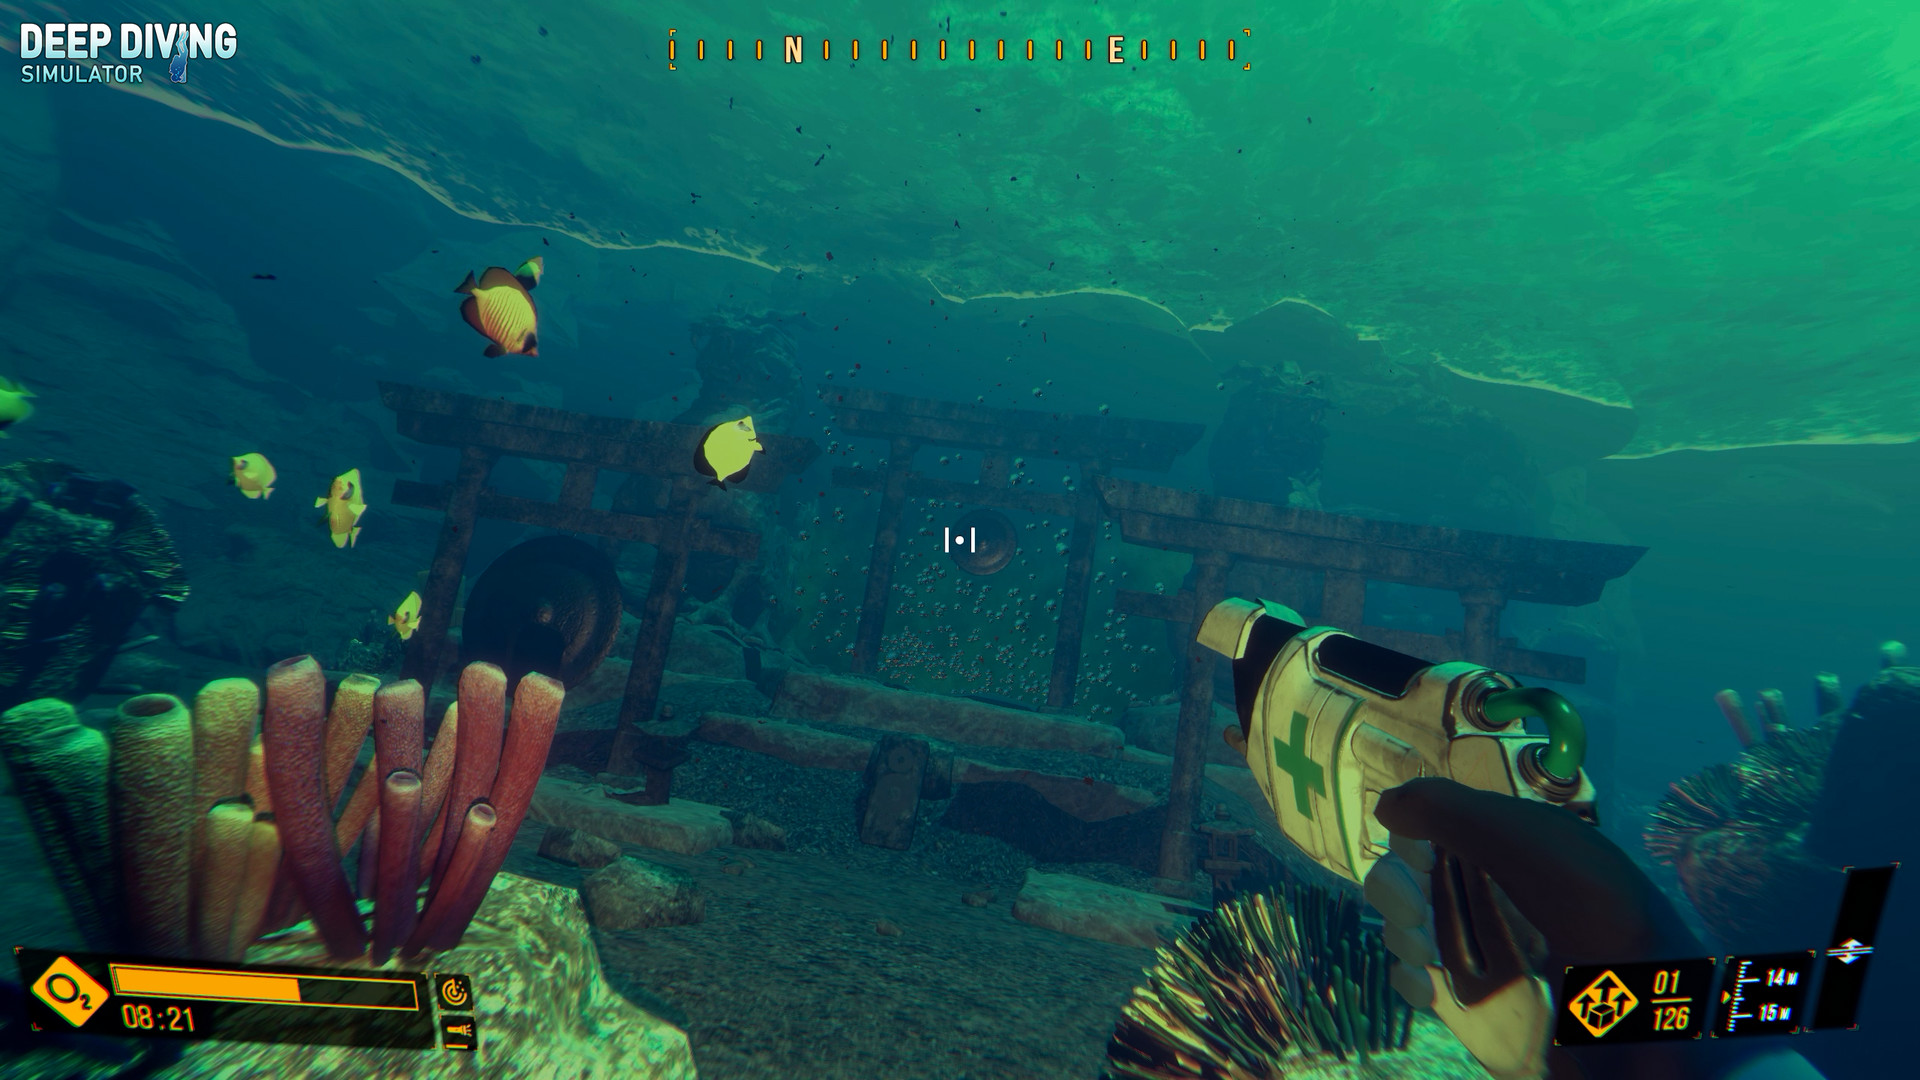 Deep Diving Simulator Download Skidrow